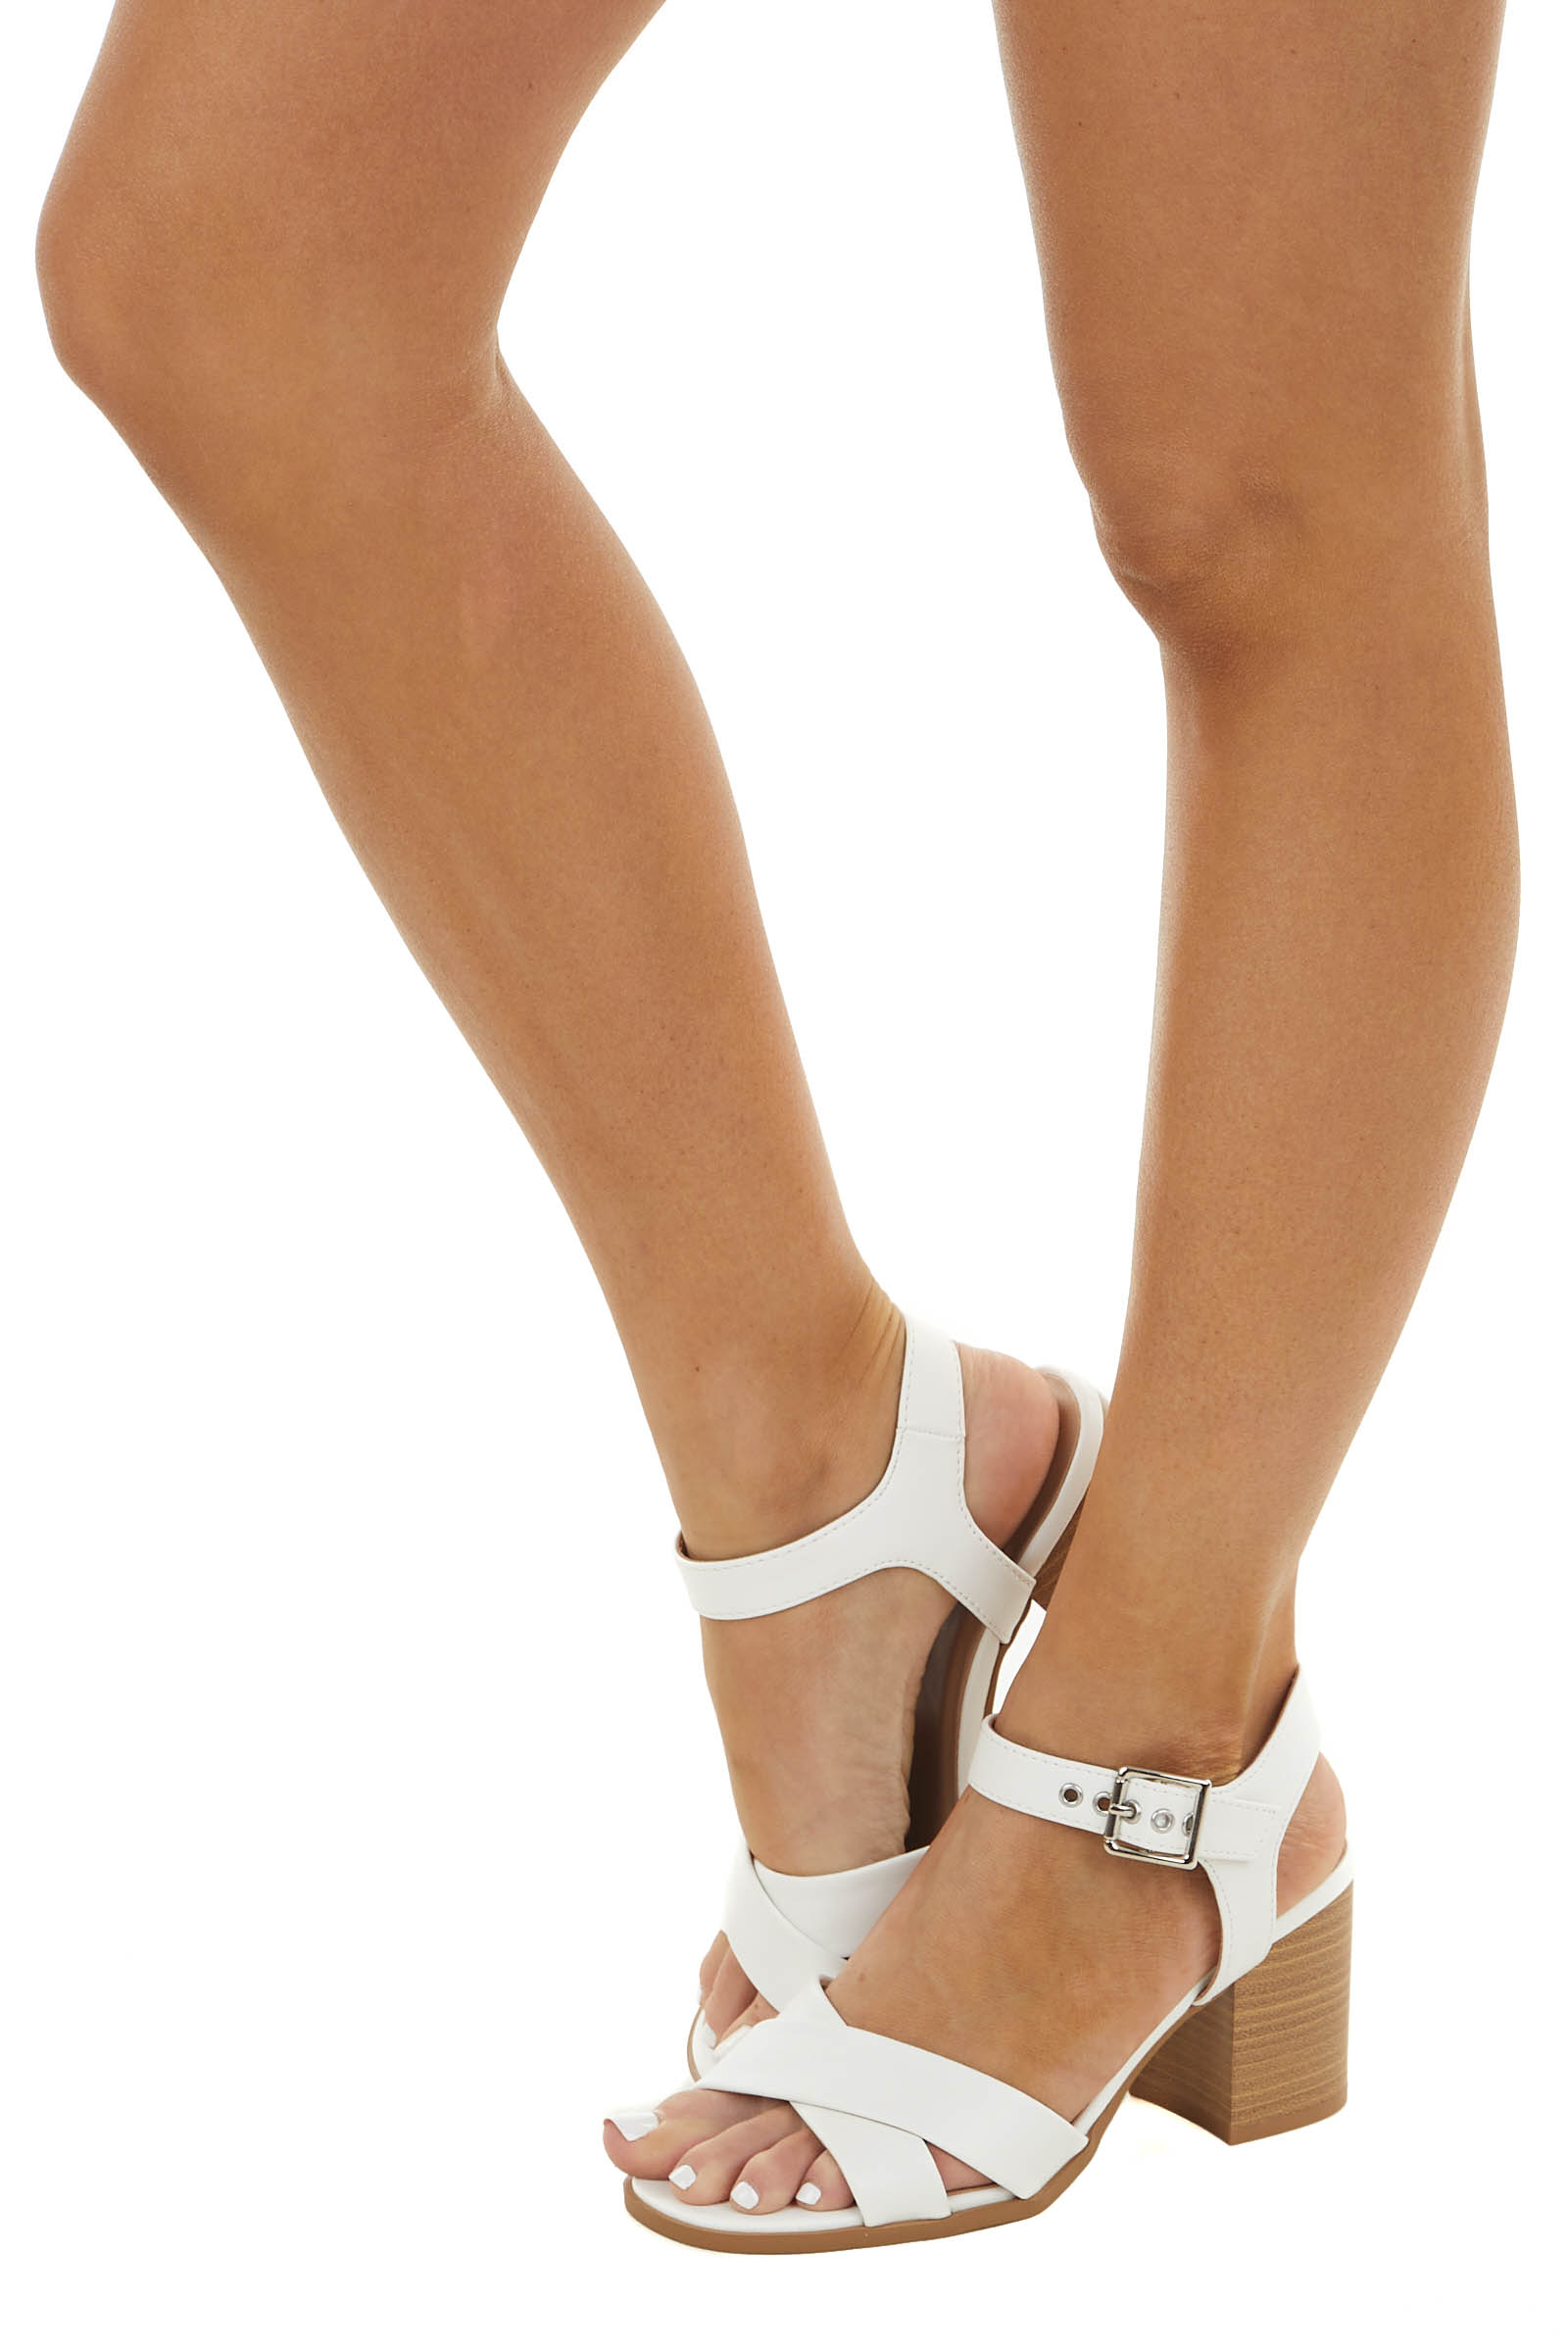 White Criss Cross Heels with Silver Buckle